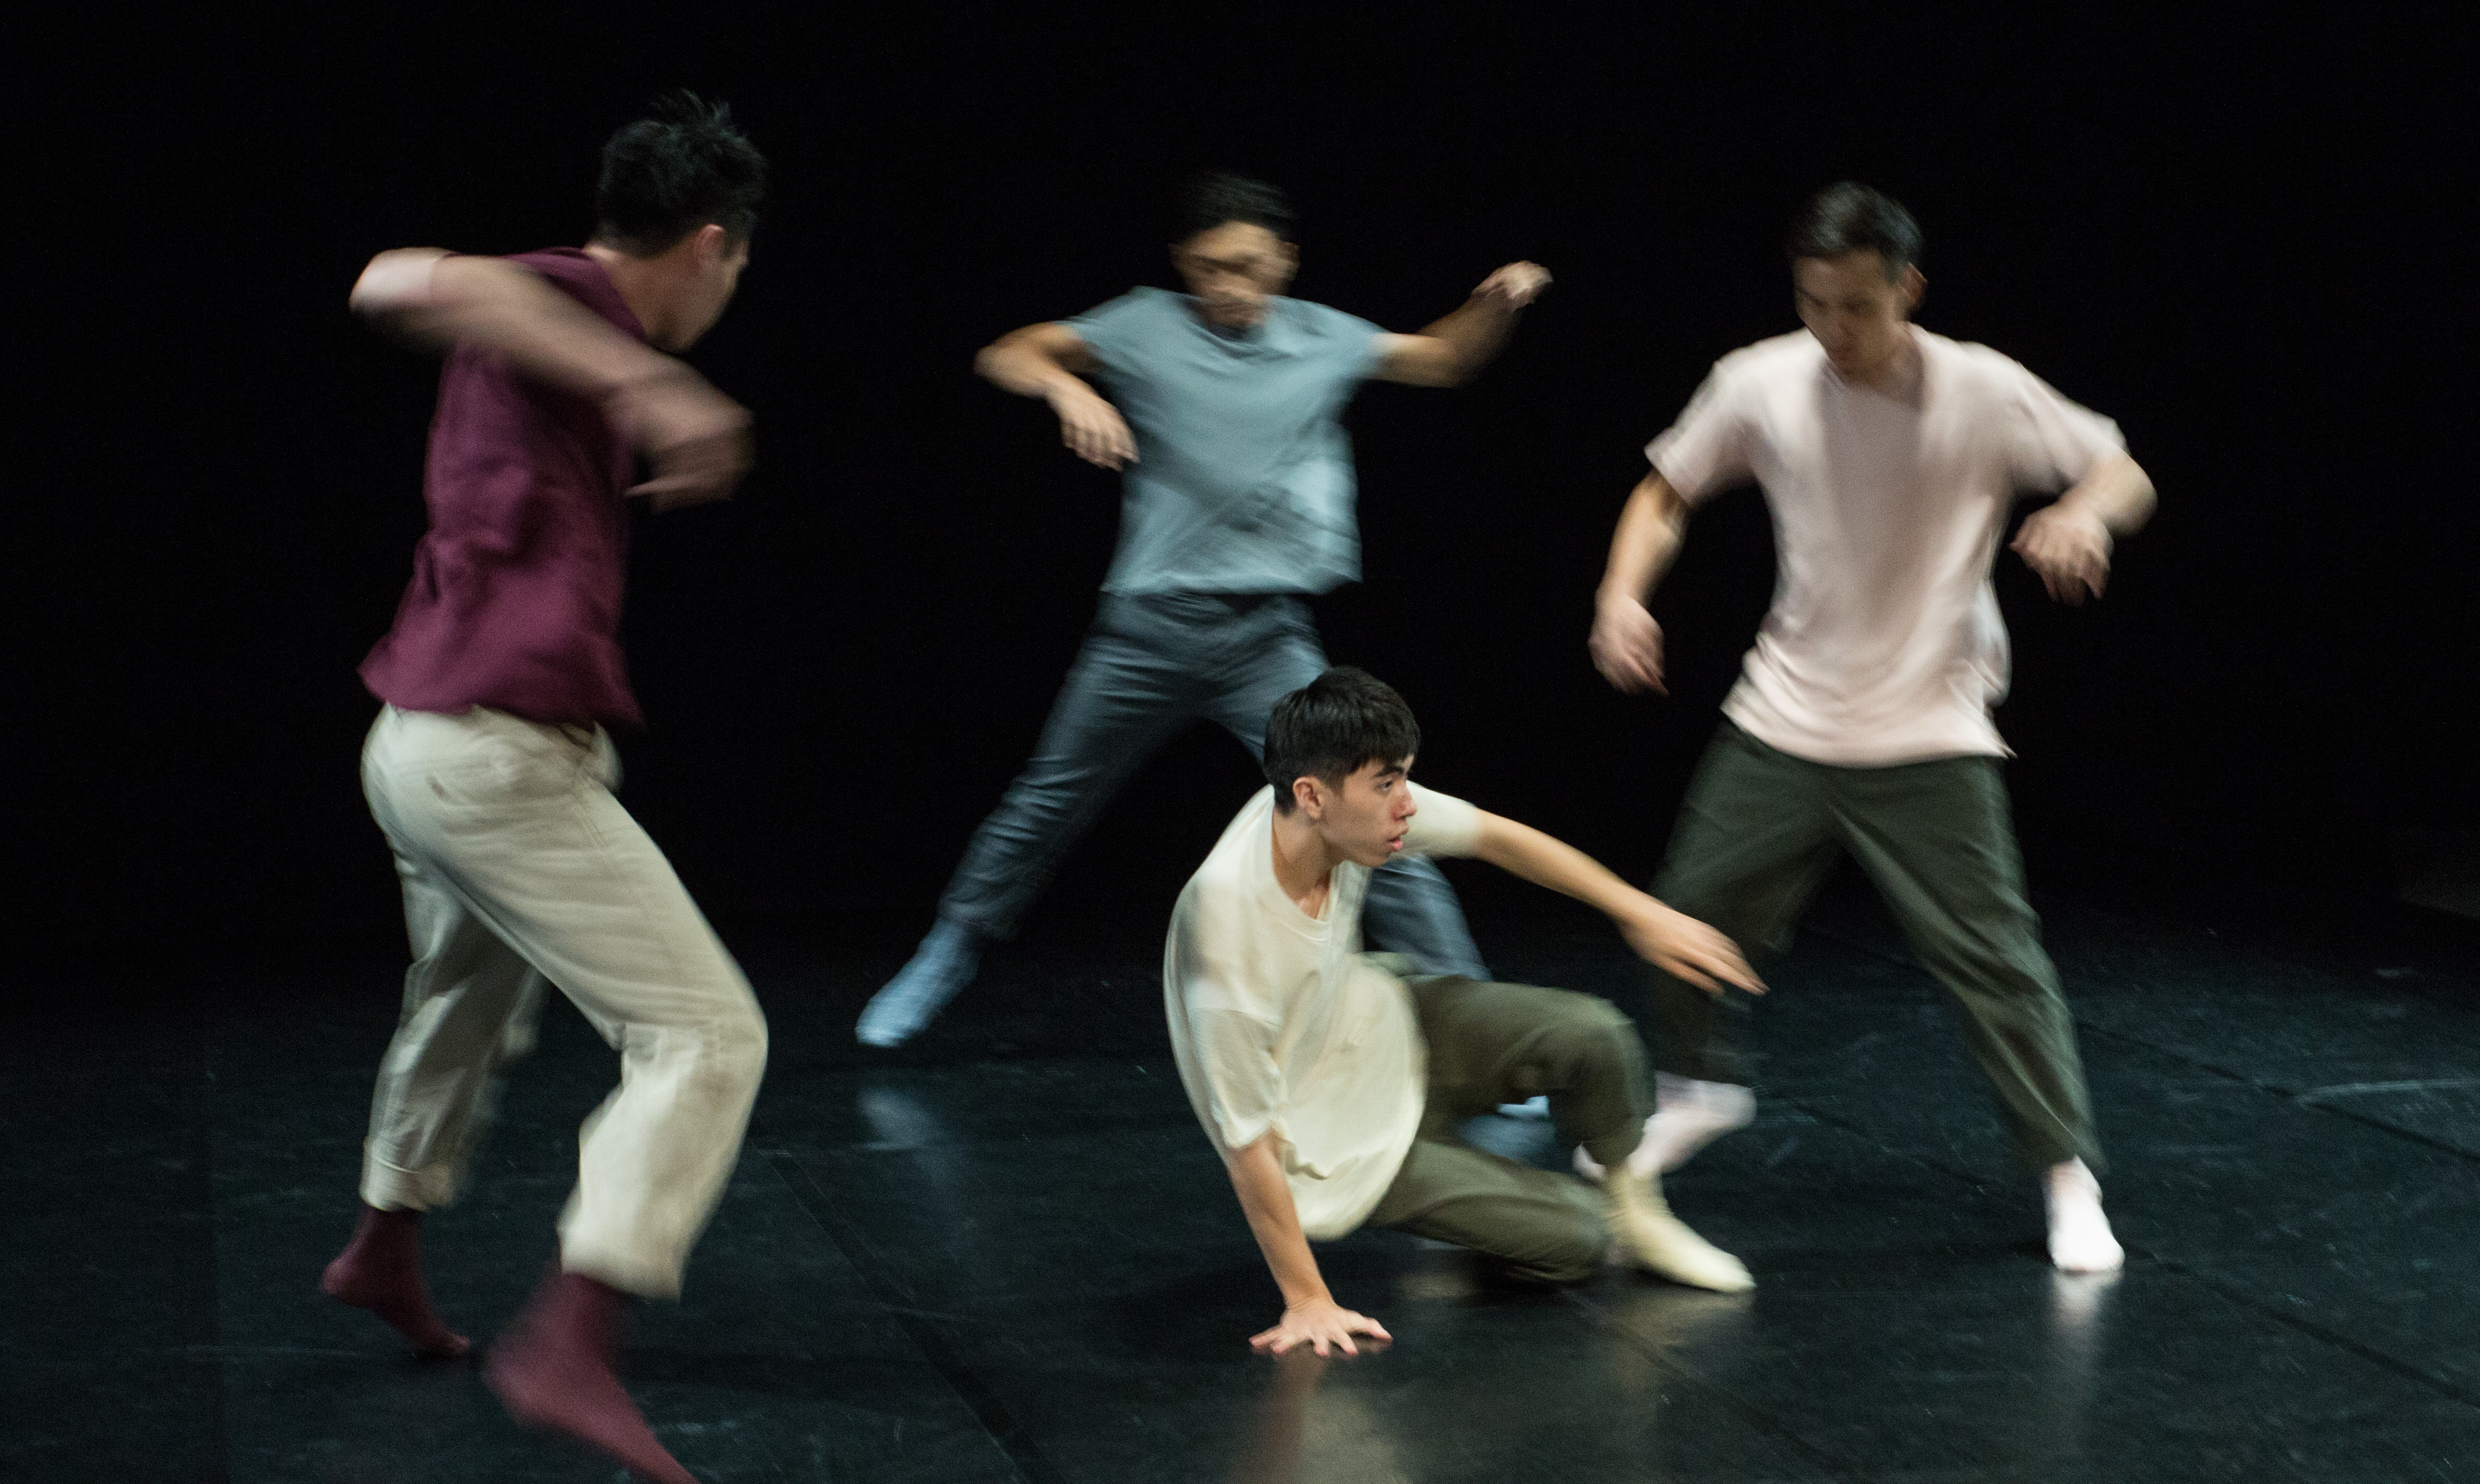 Bon 4 Bon will be performed by a Taiwanese dance group